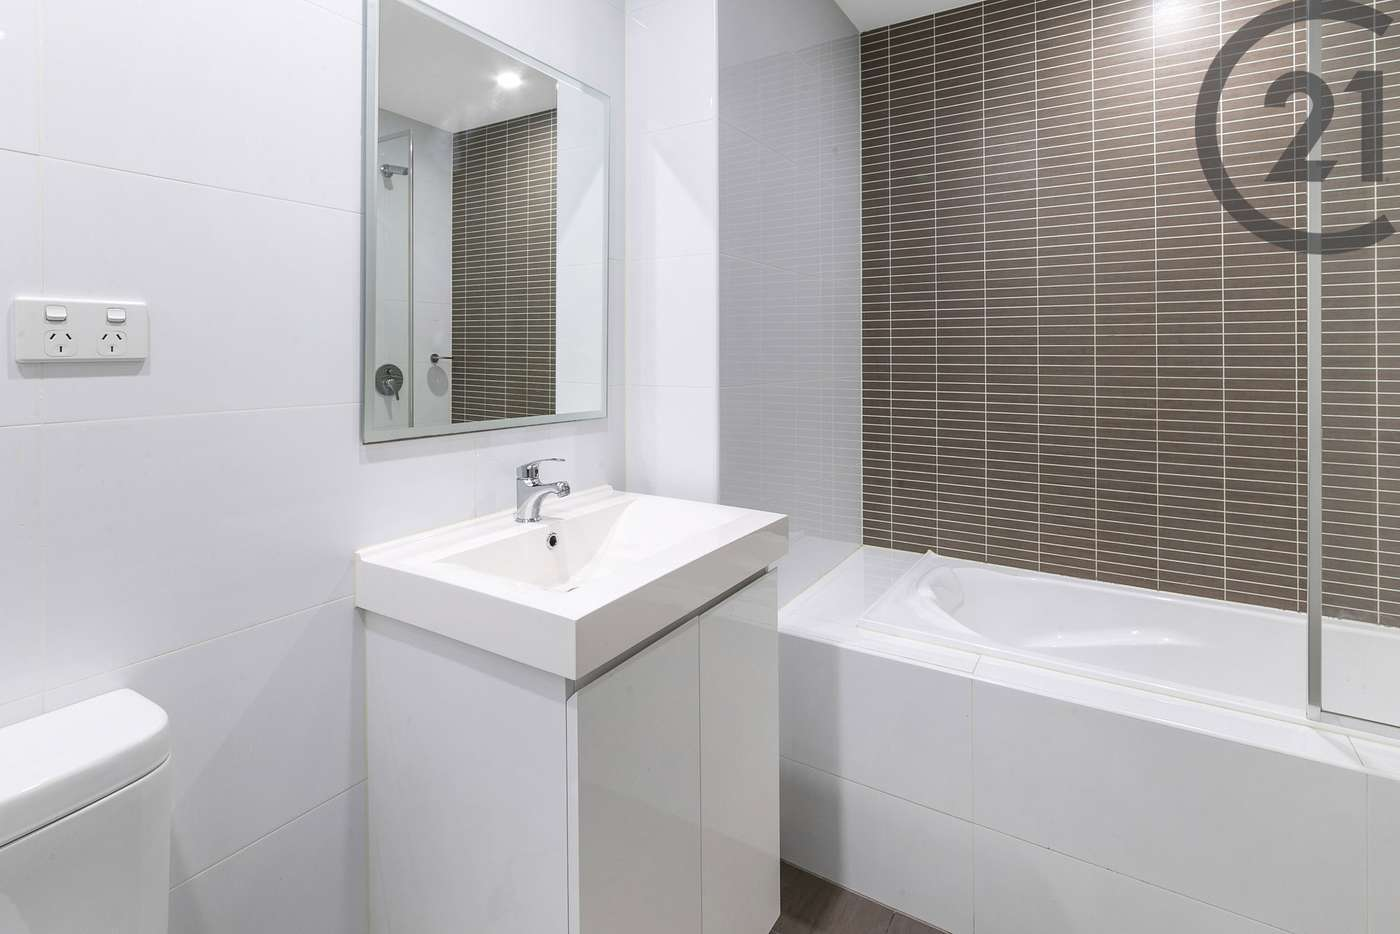 Sixth view of Homely apartment listing, 405/29 Hunter Street, Parramatta NSW 2150